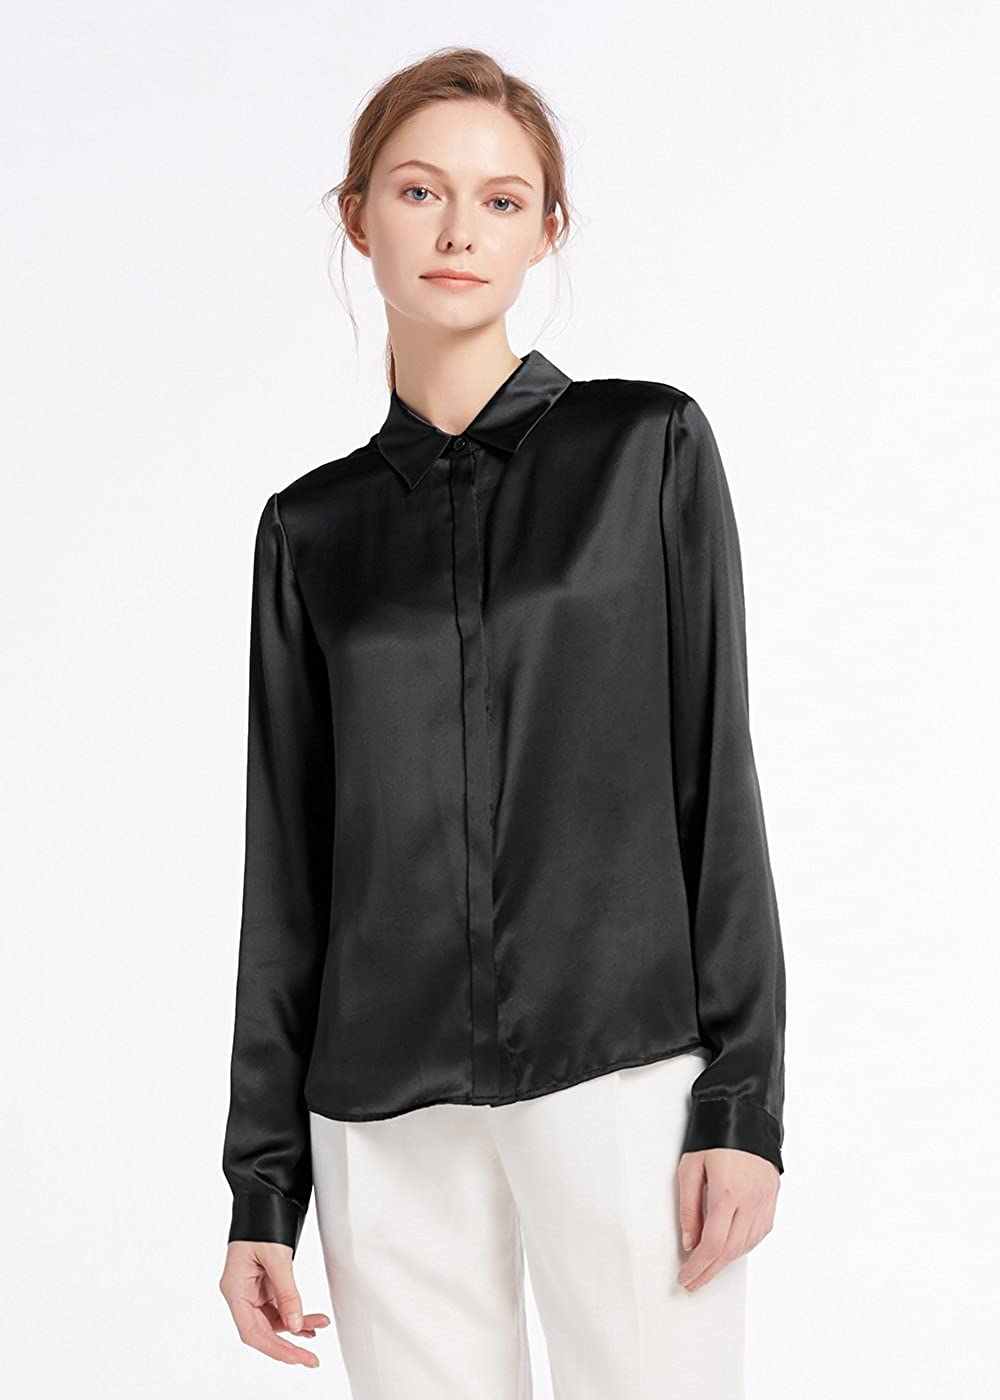 Lilysilk Womens 100 Silk Blouse Long Sleeve Lady Shirt 22 Momme Extra Big Size Mysty Black Zip Hoodie Fit 6l Pure Charmeuse At Amazon Clothing Store